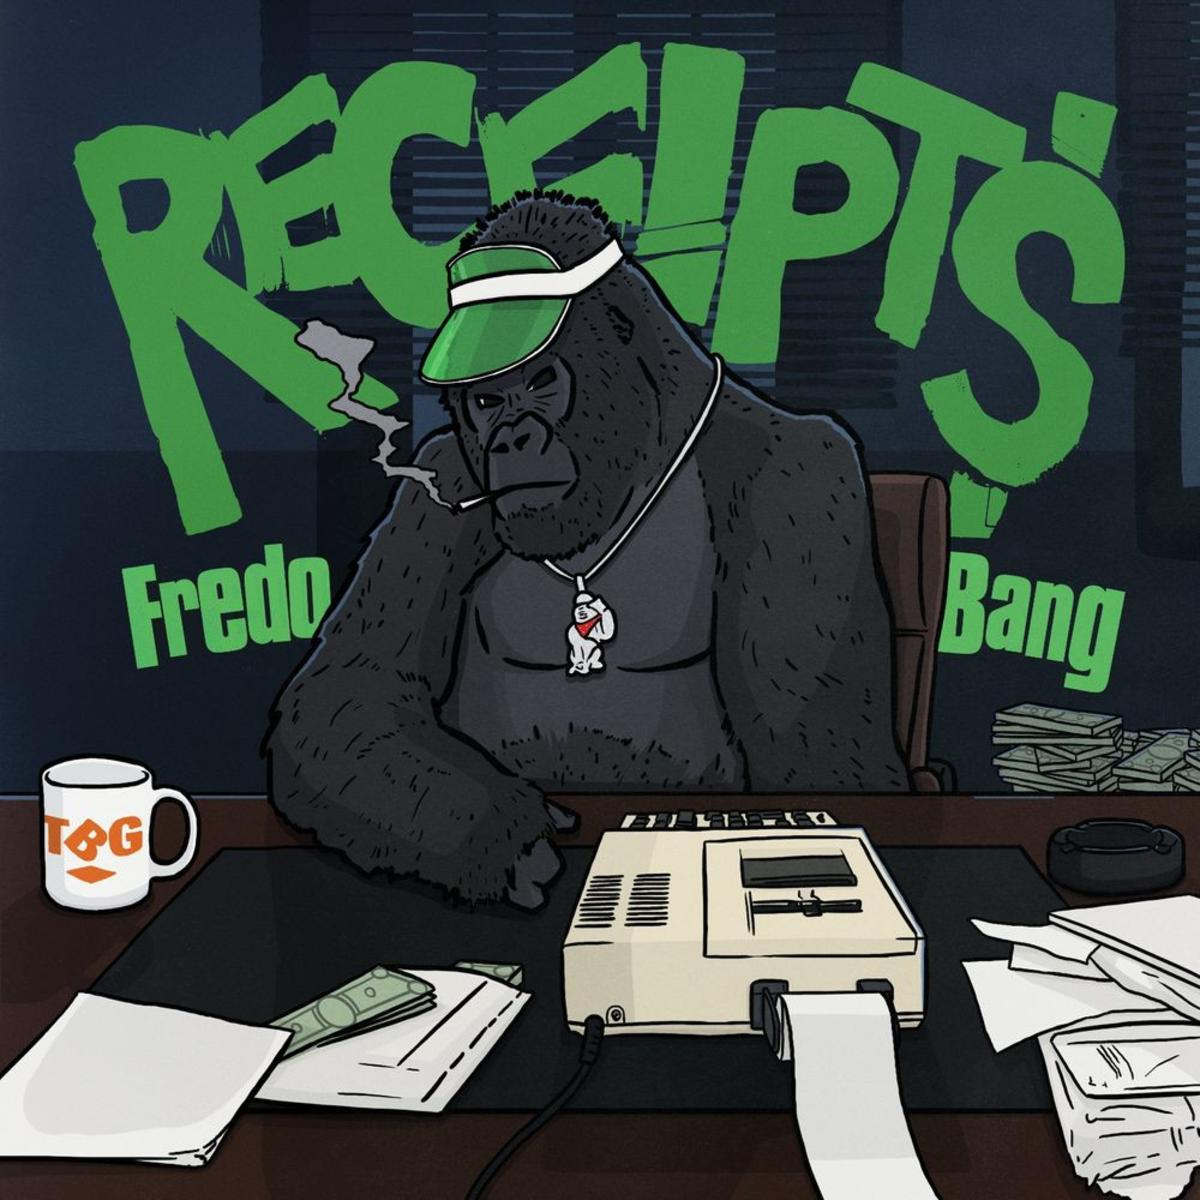 Fredo Bang Receipts Audio Lyrics Download Mp3 Music Lyrics Music Video Nobody lyrics from bandstand musical. fredo bang receipts audio lyrics